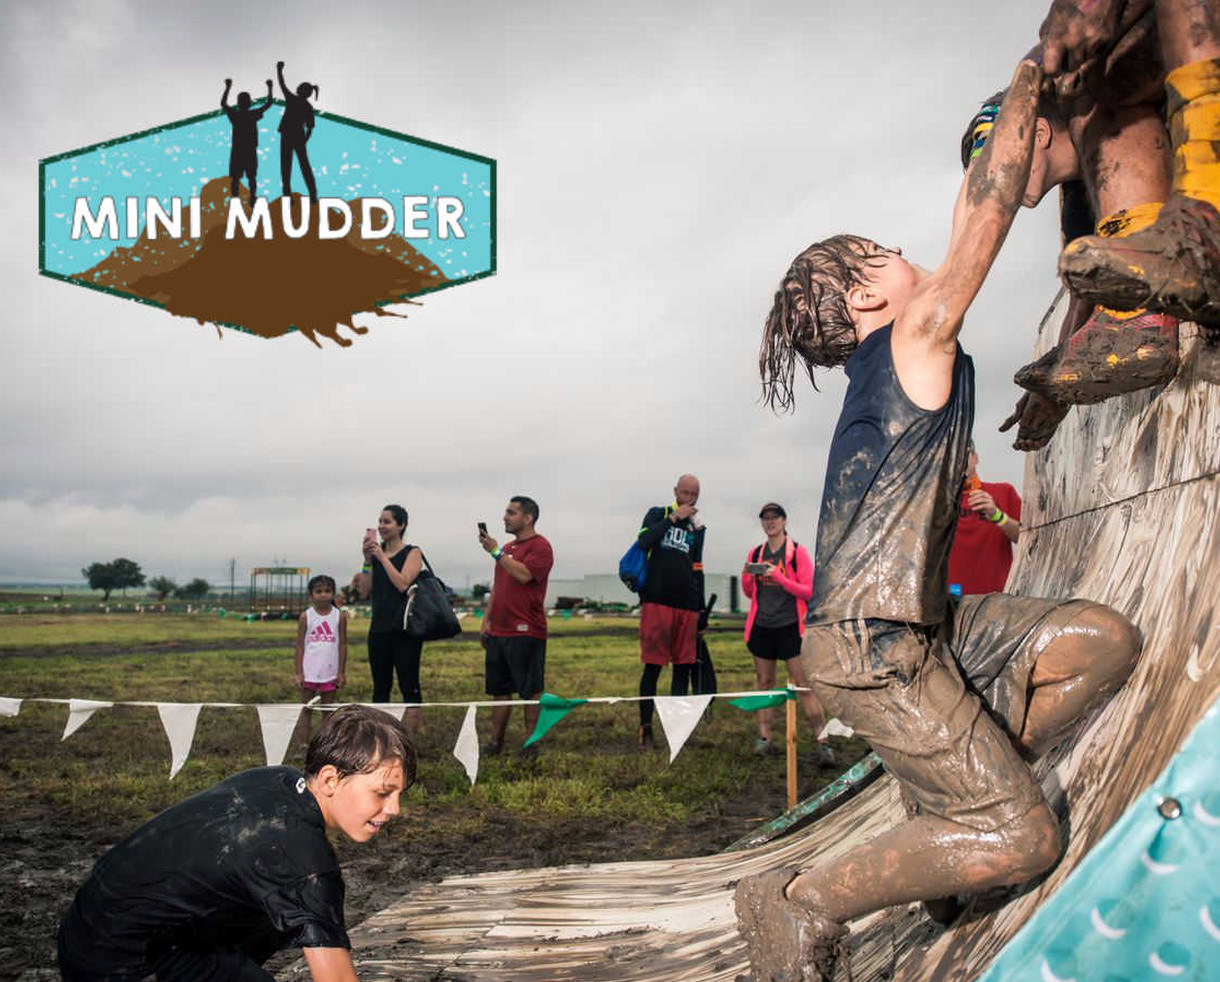 Deal: Tough Mudder 5K for Adults and Mini-Mudder Event for